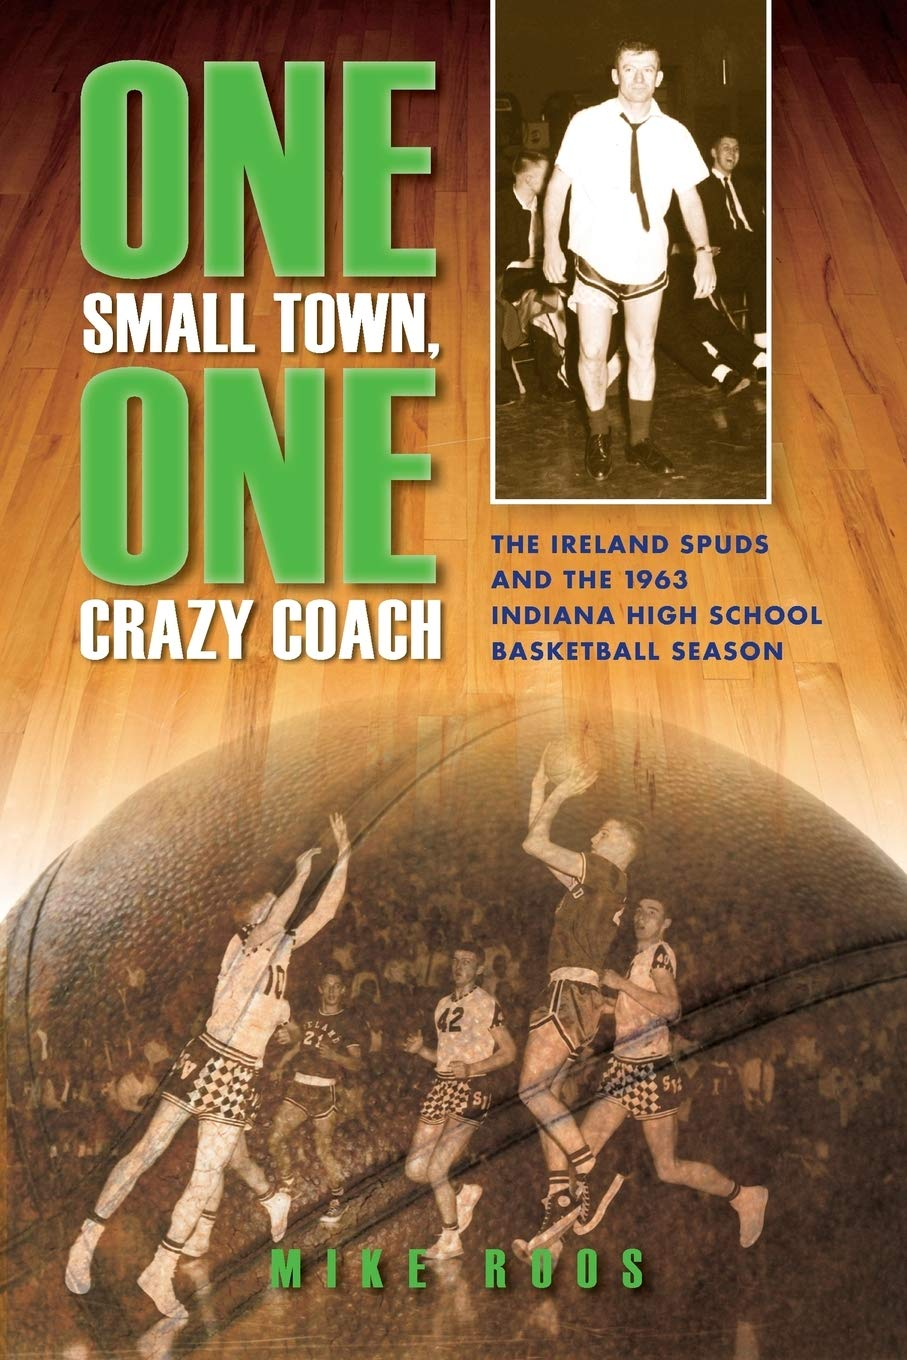 Download One Small Town, One Crazy Coach: The Ireland Spuds and the 1963 Indiana High School Basketball Season